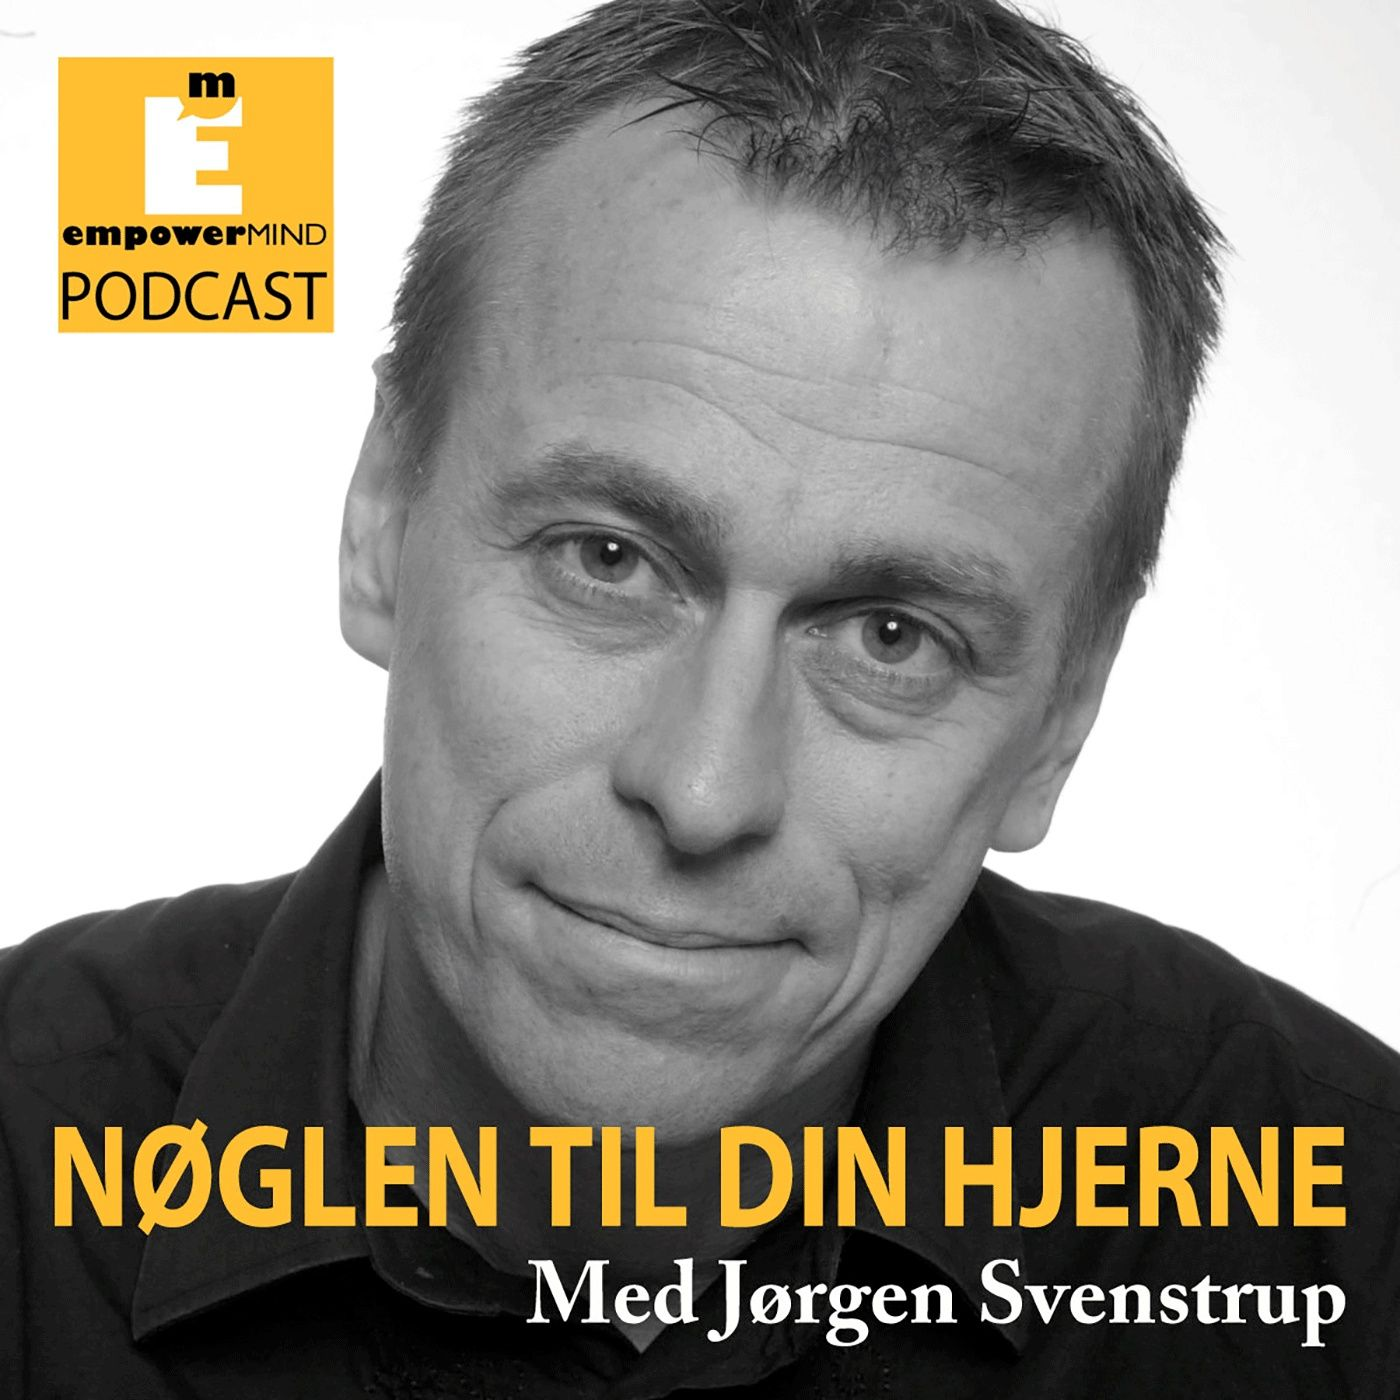 #175_Empowerment for viderekommende - Podcast live